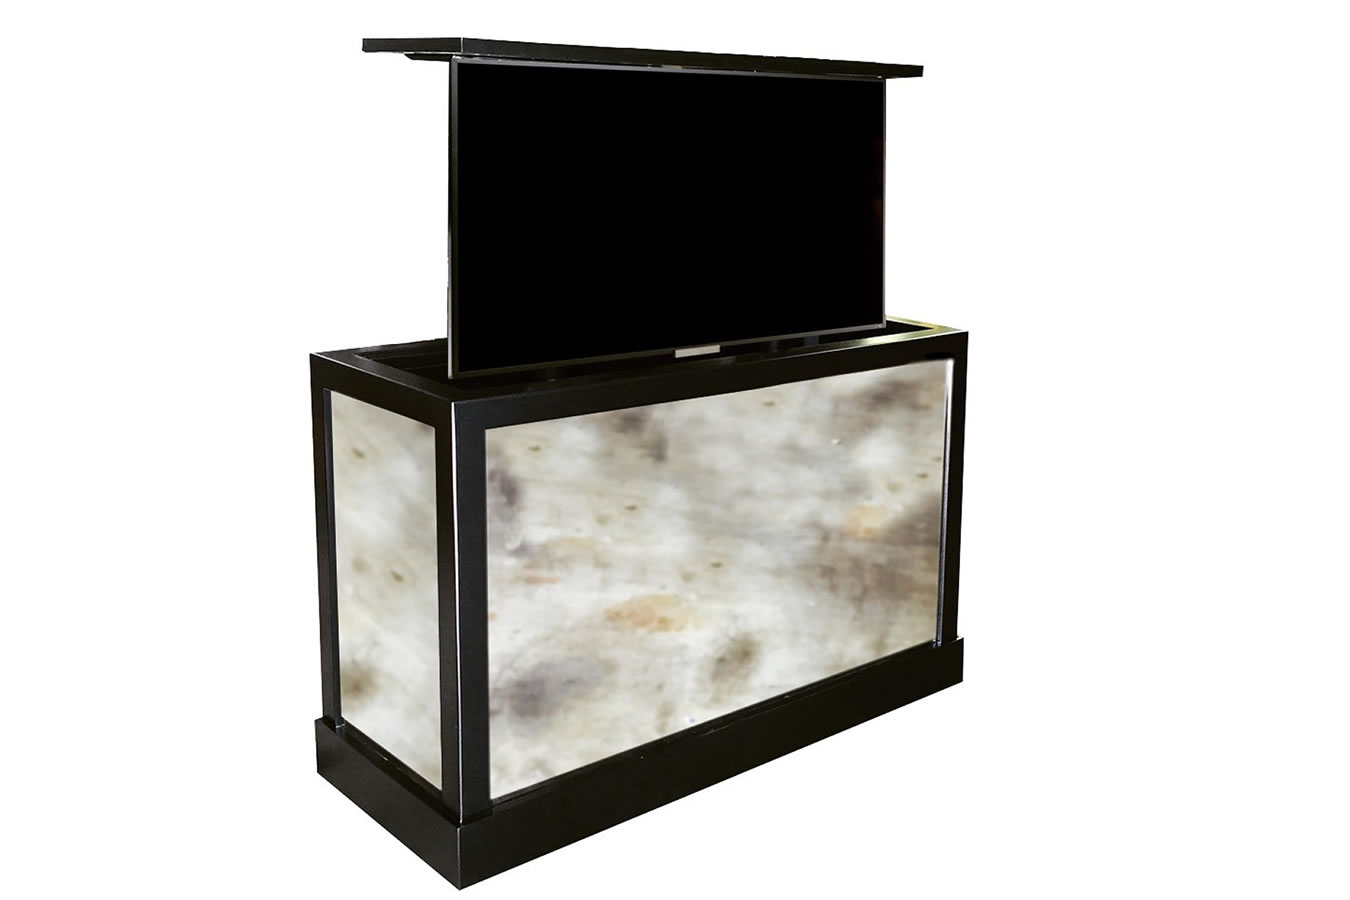 Pop up tv stand sorrento custom motorized tv stand for Motorized tv lift cabinets